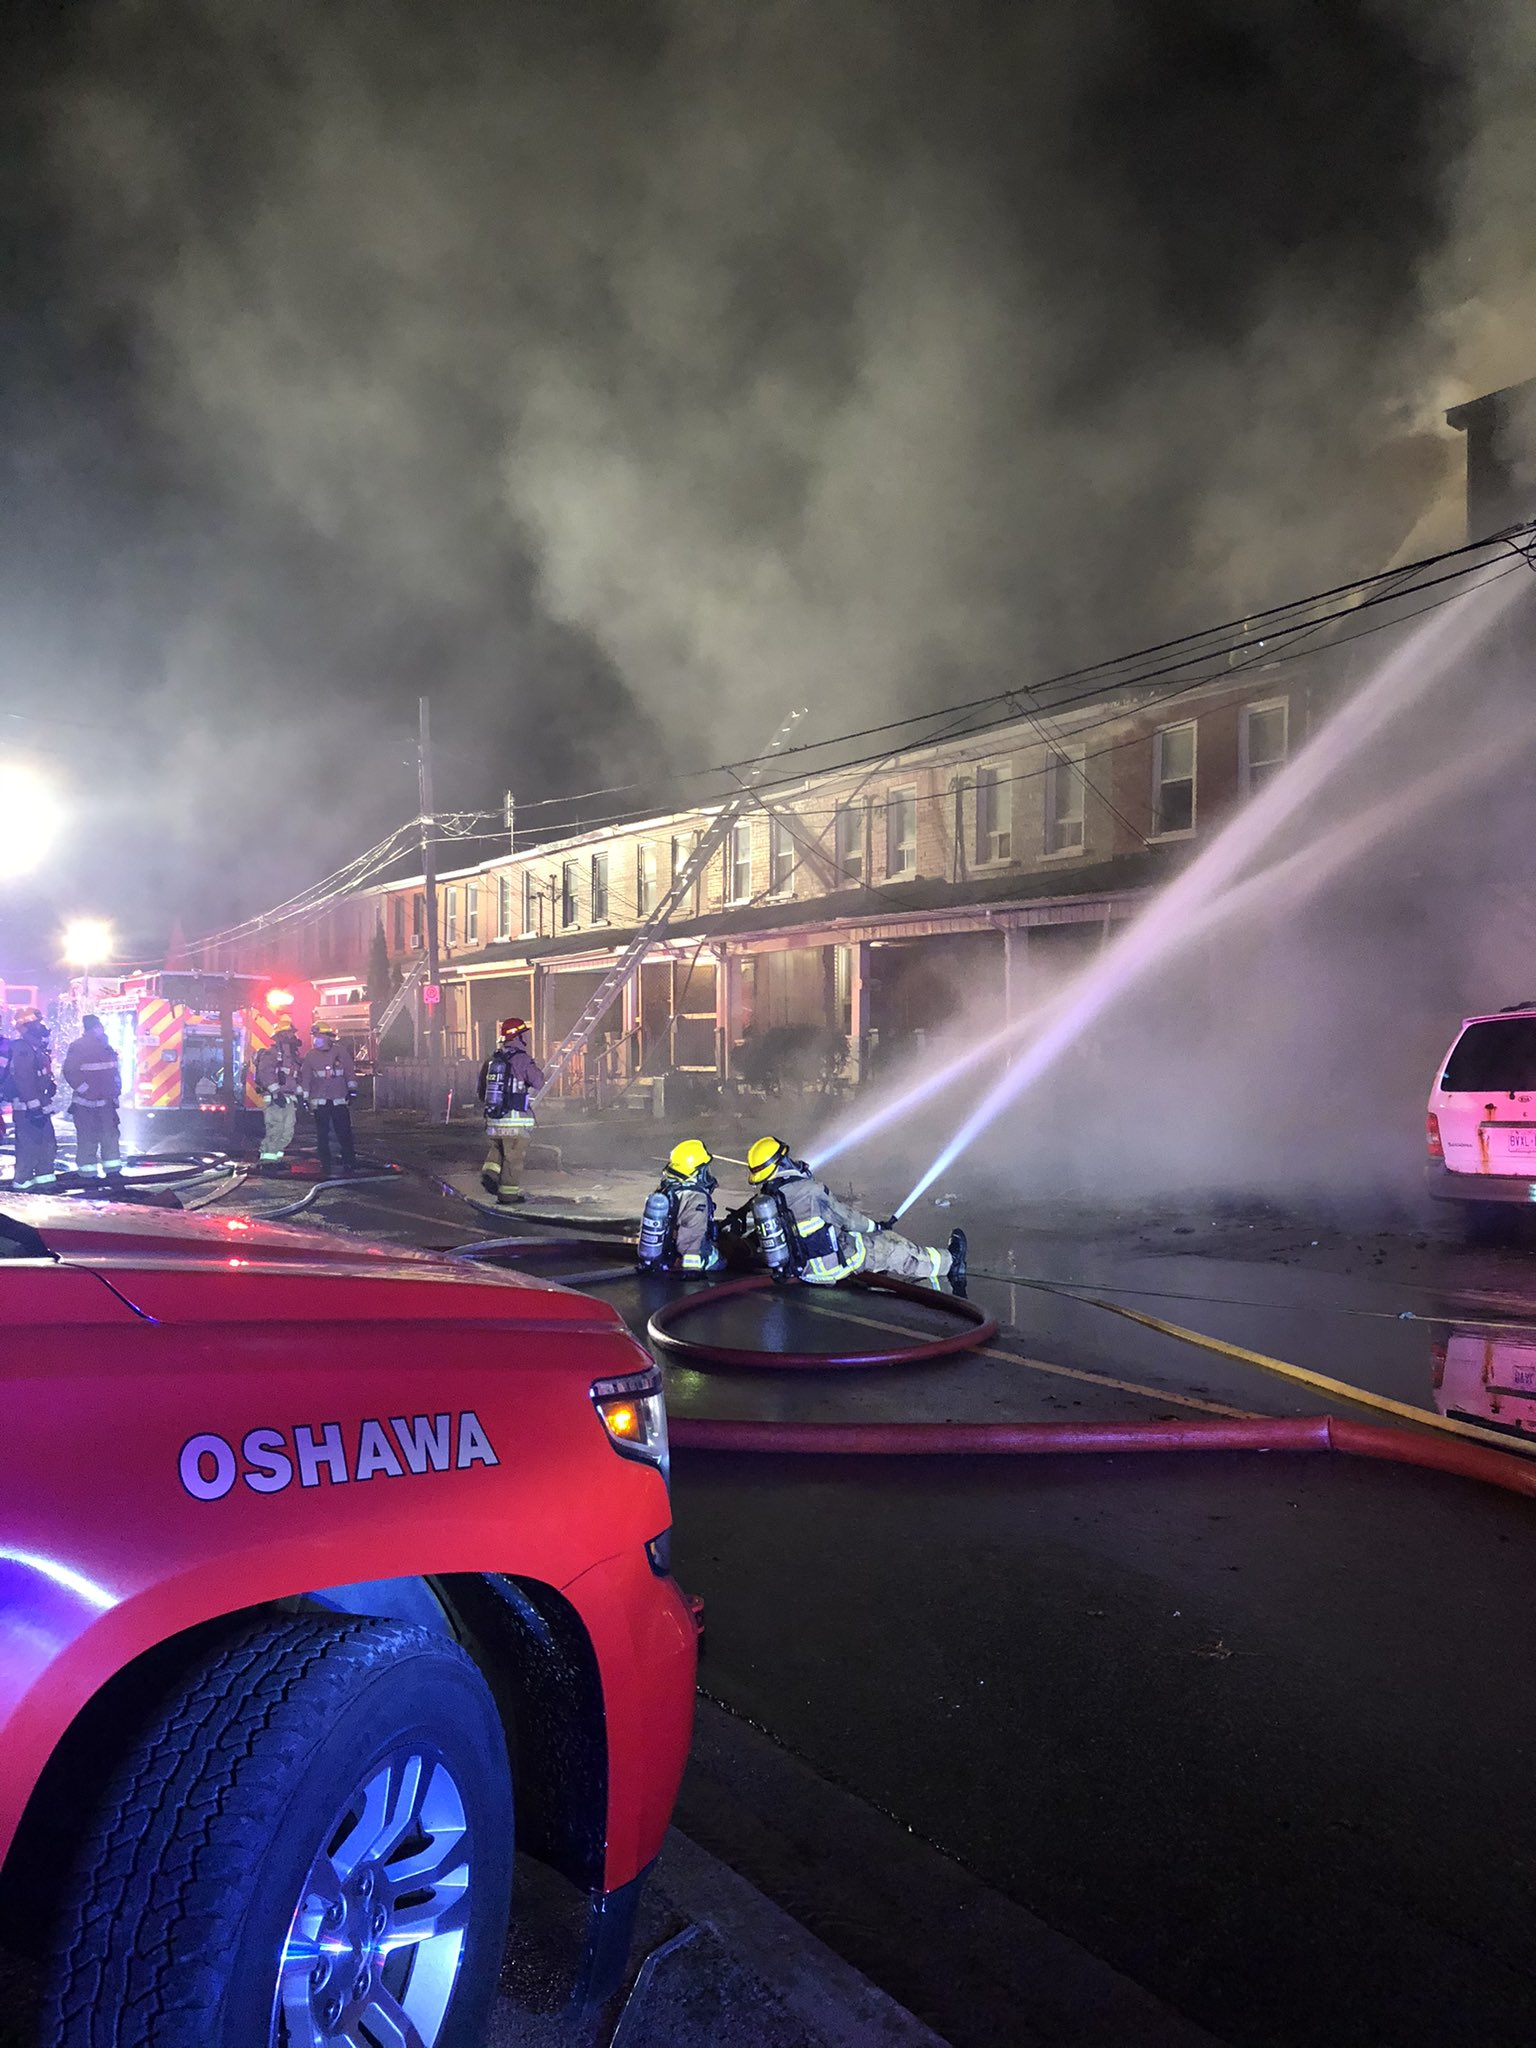 Two bodies recovered from Oshawa fire scene